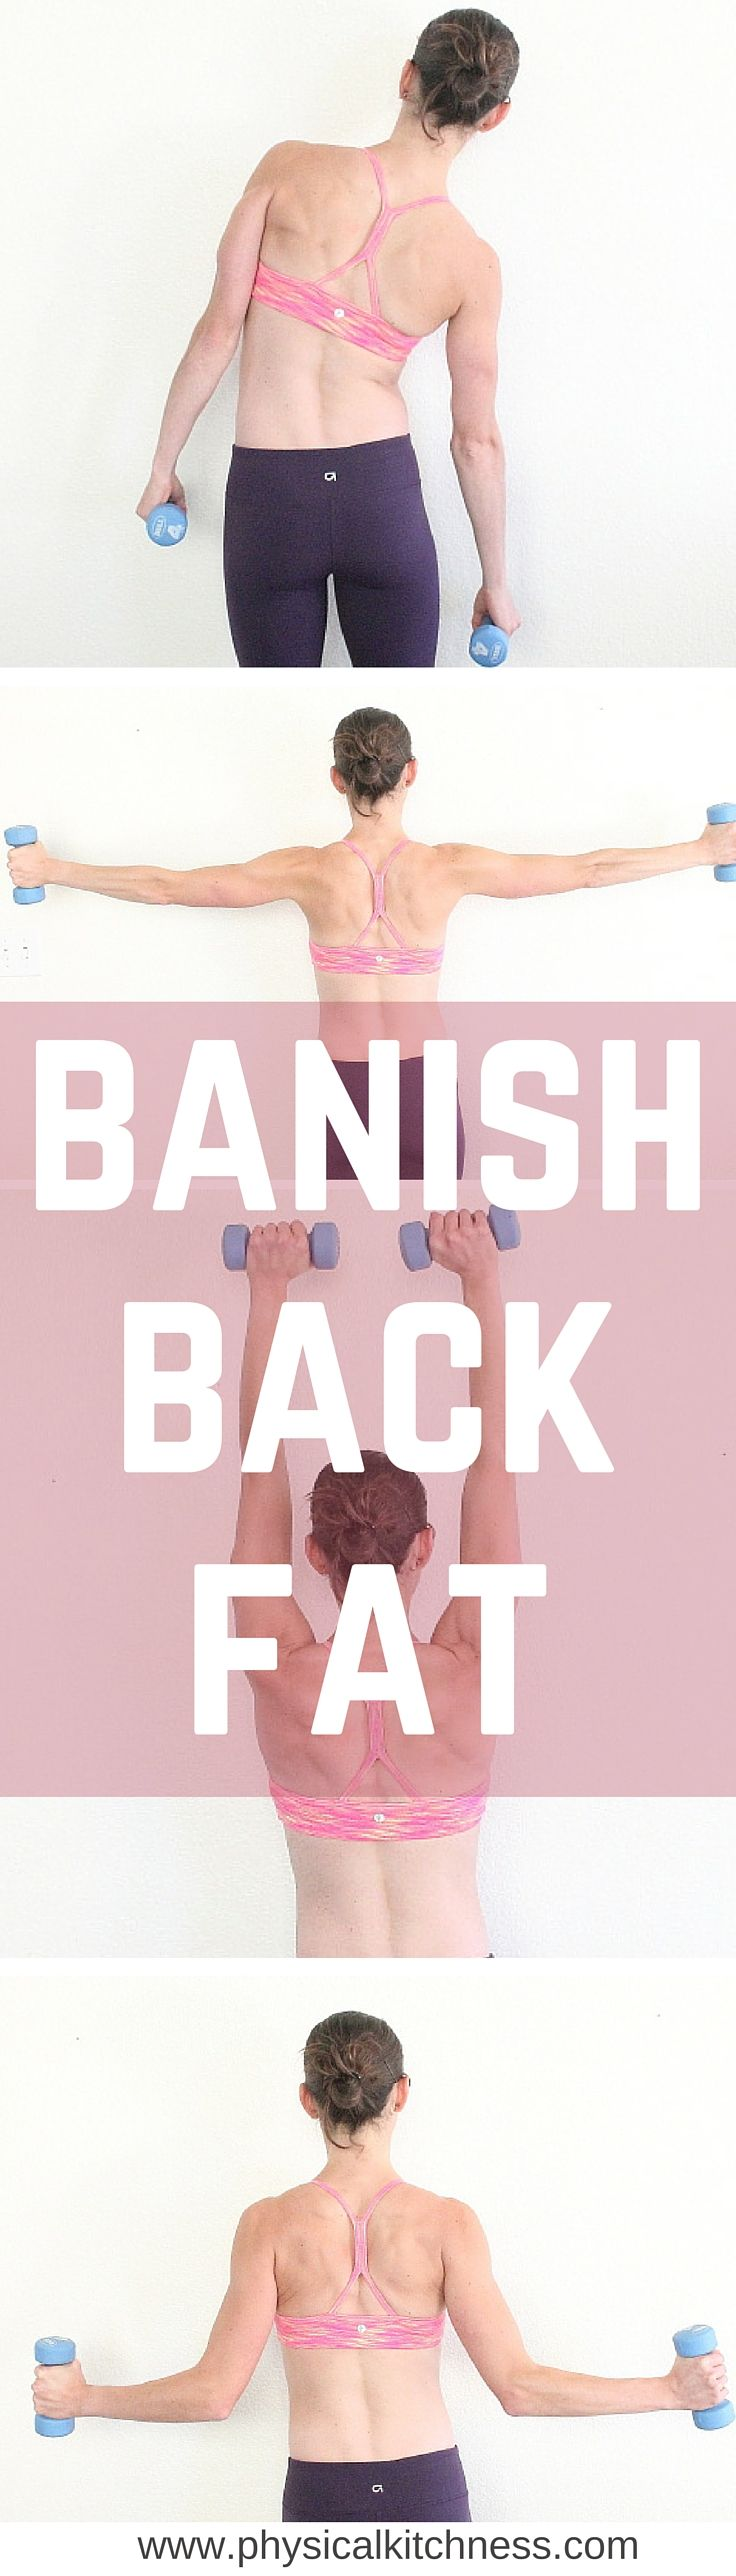 An AMAZING workout to sculpt all those sexy back muscles! Banish the back fat HERE!                                                                                                                                                                                 More